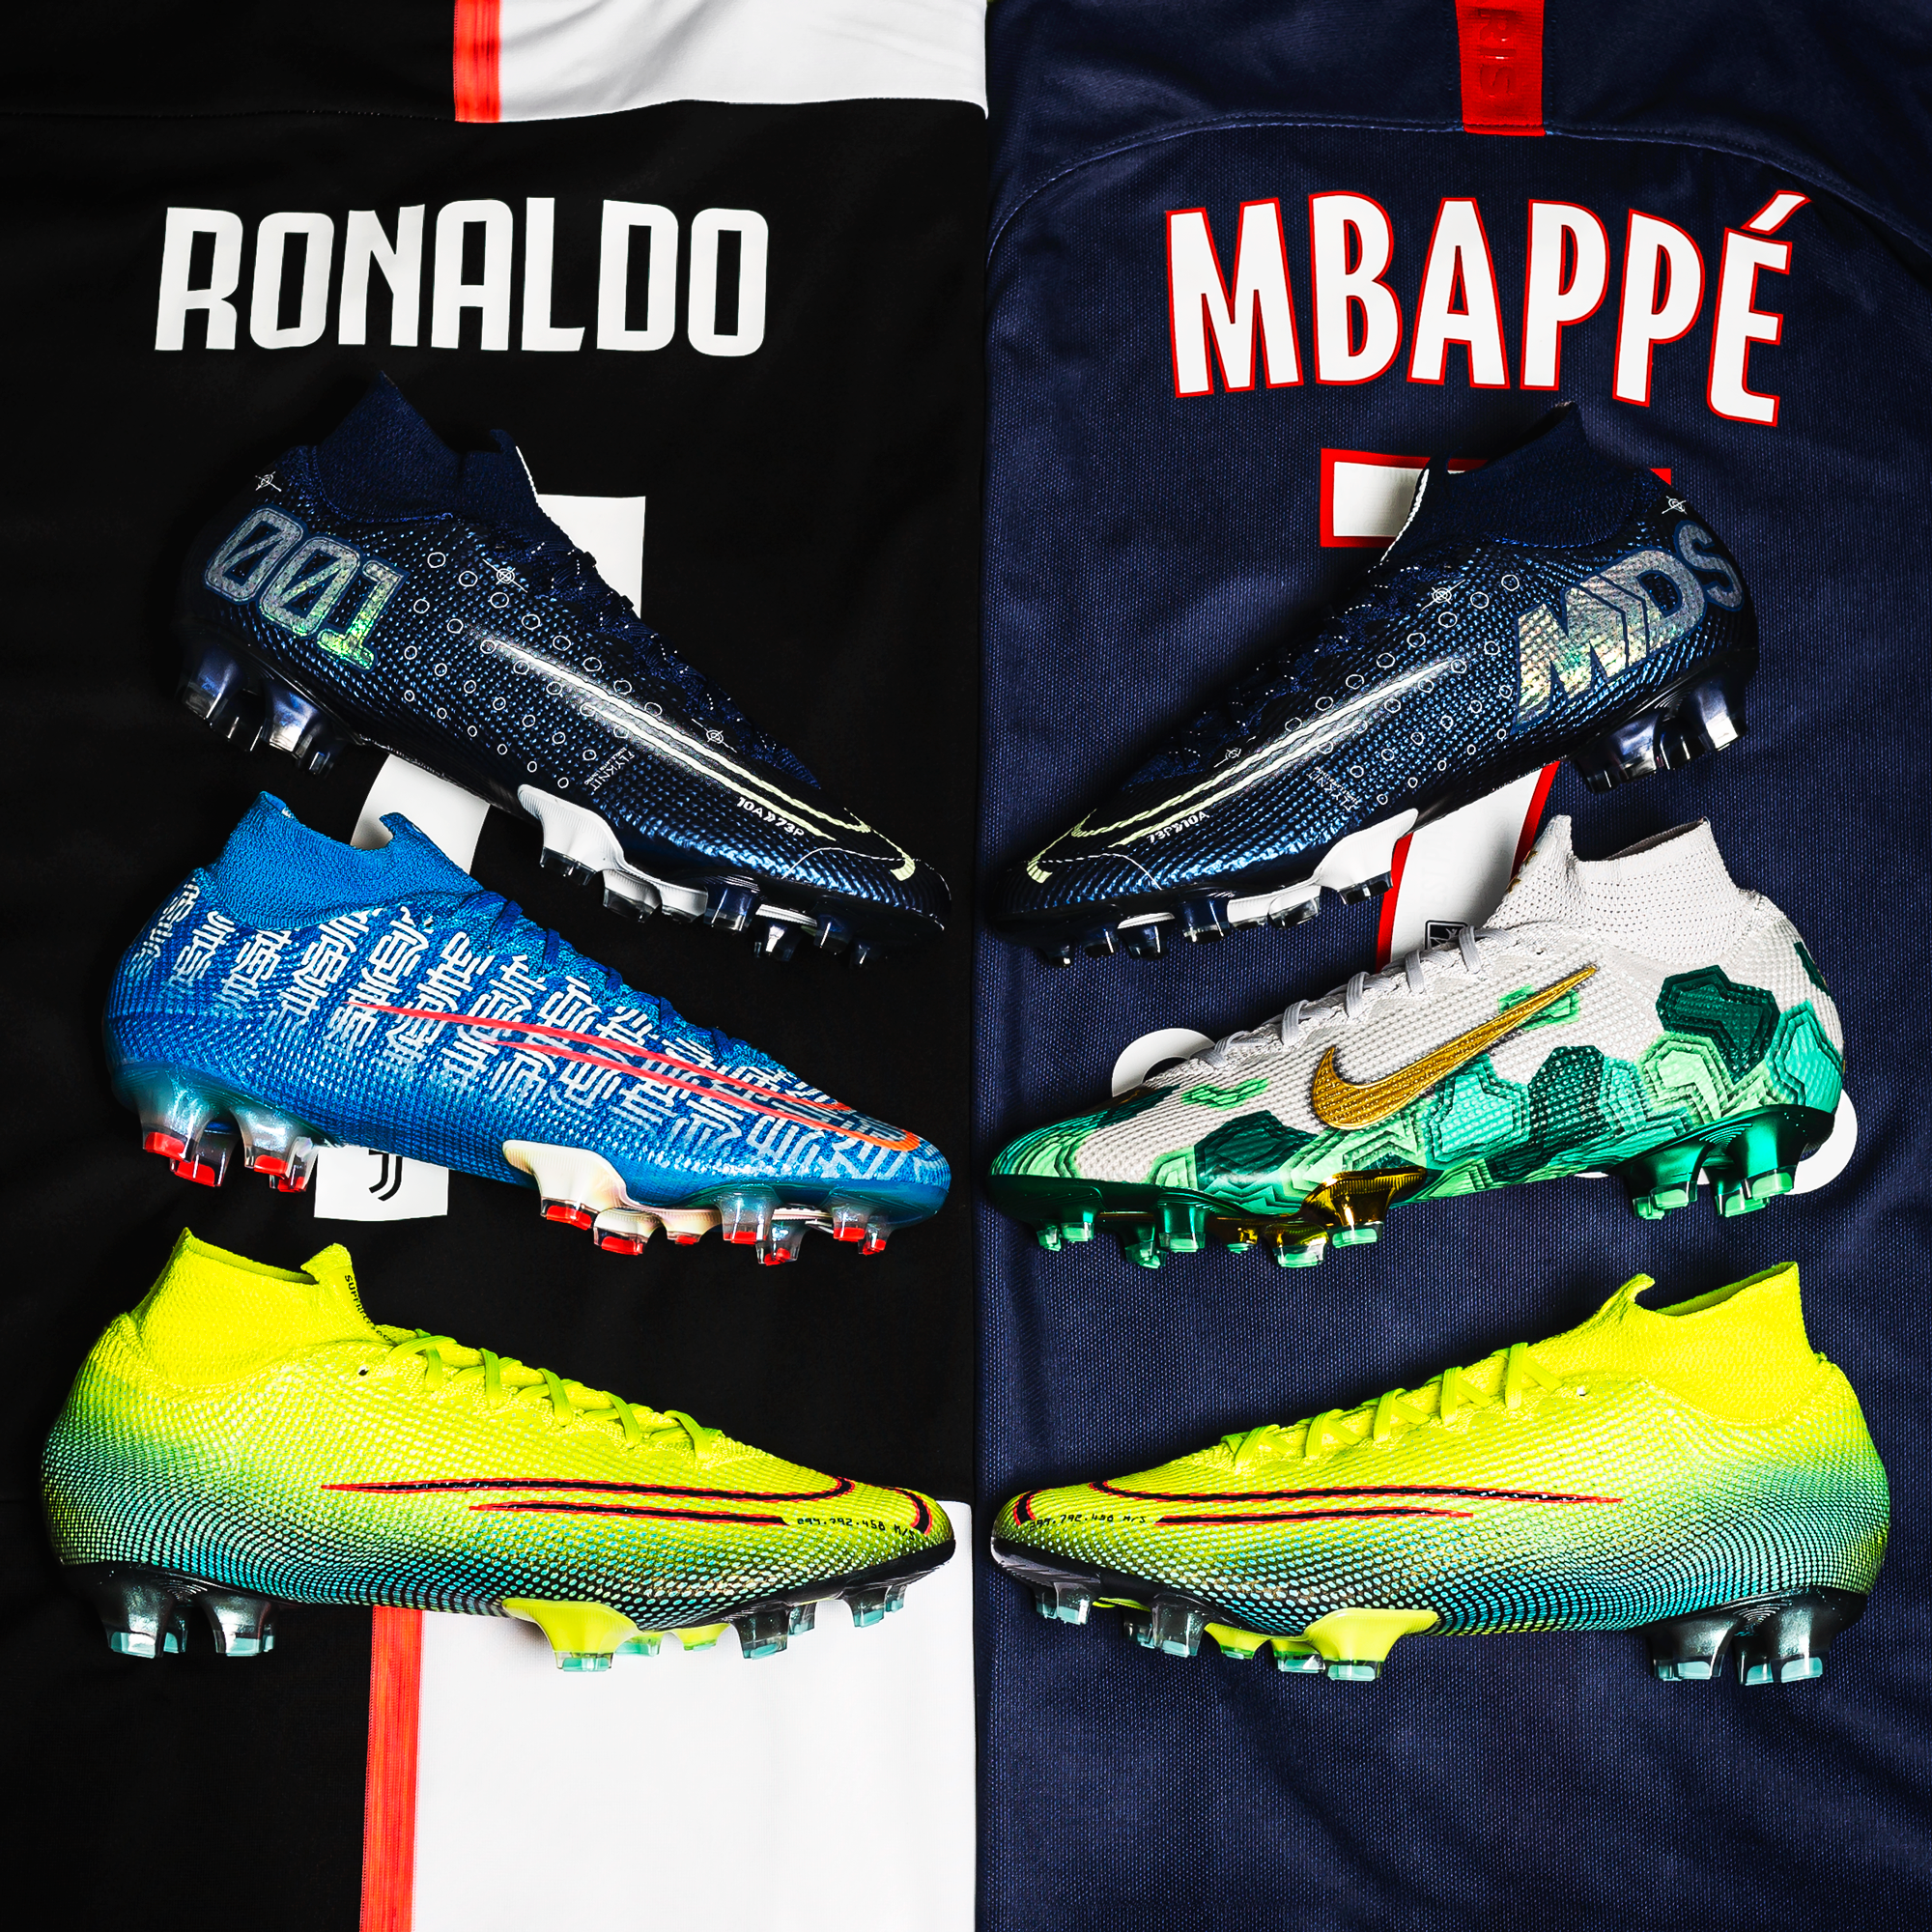 Cr7 Mbappe In 2020 Nike Football Boots Nike Soccer Shoes Soccer Cleats Nike